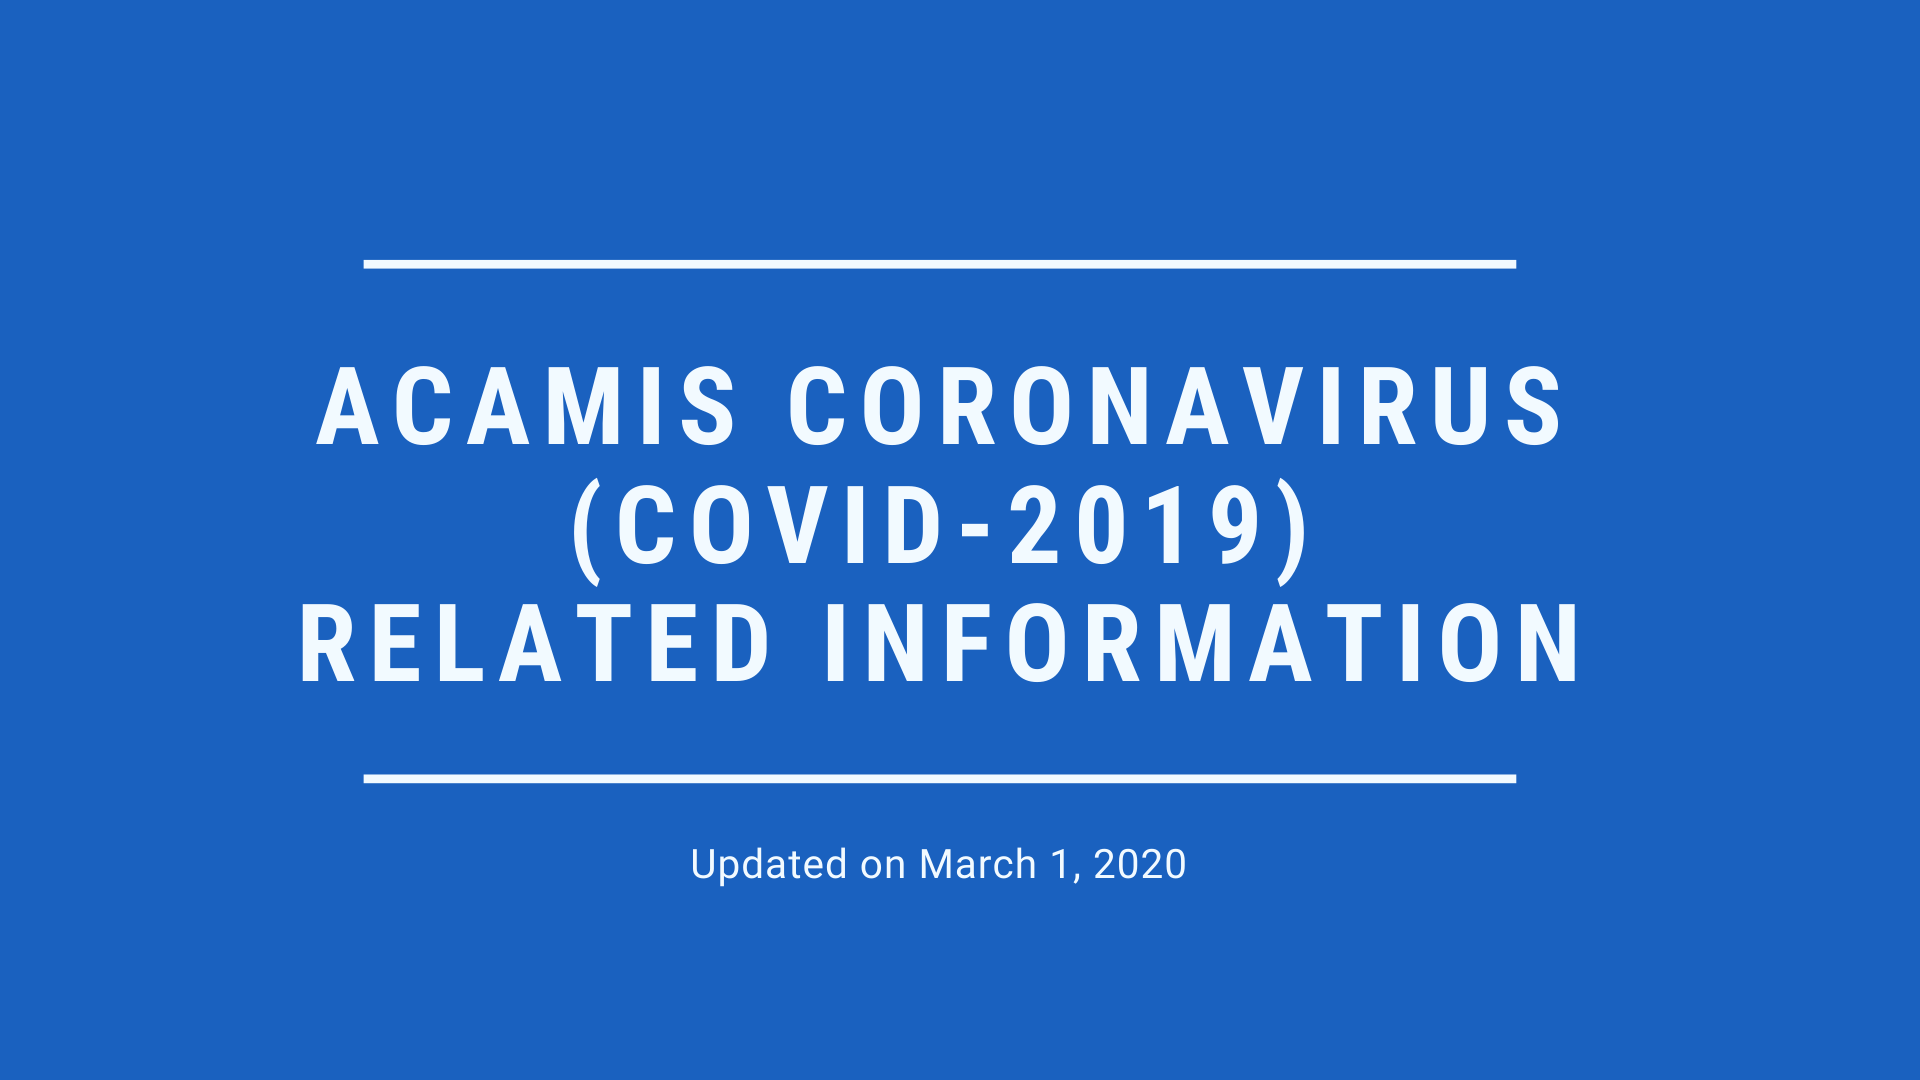 ACAMIS Corona Virus (COVID 2019) - Related Information